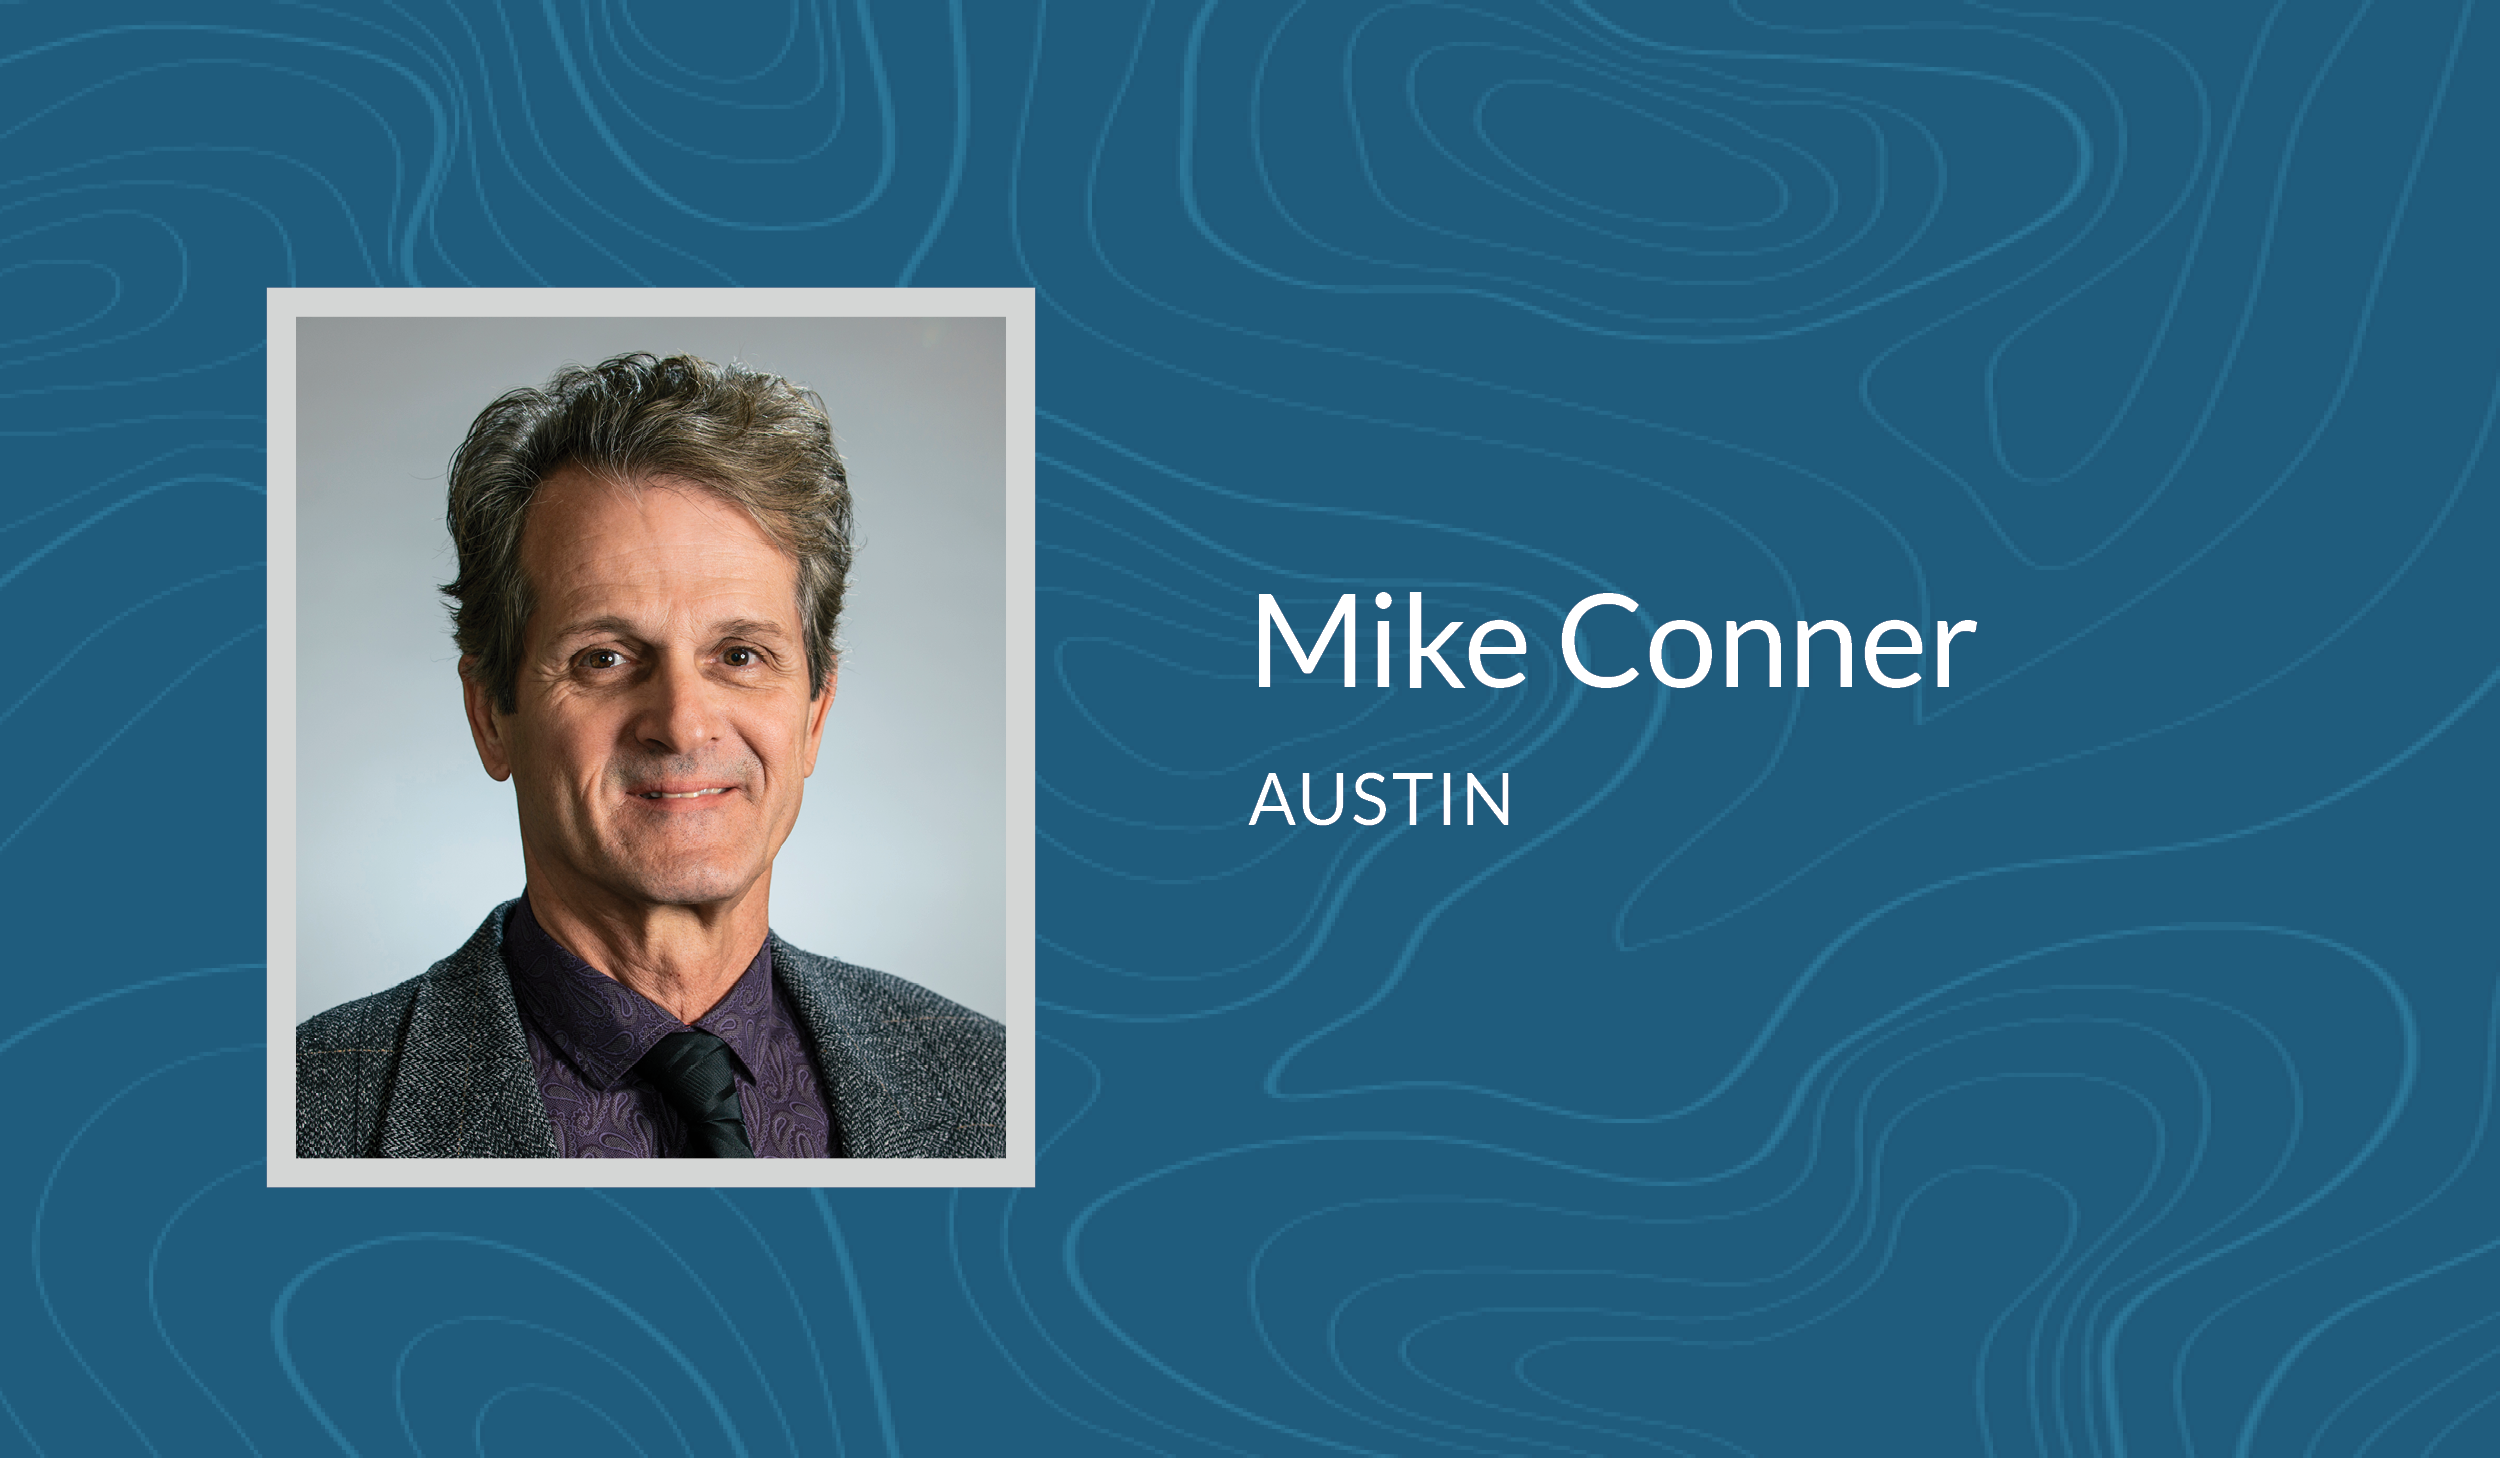 Mike Conner Landing Page Headers.png